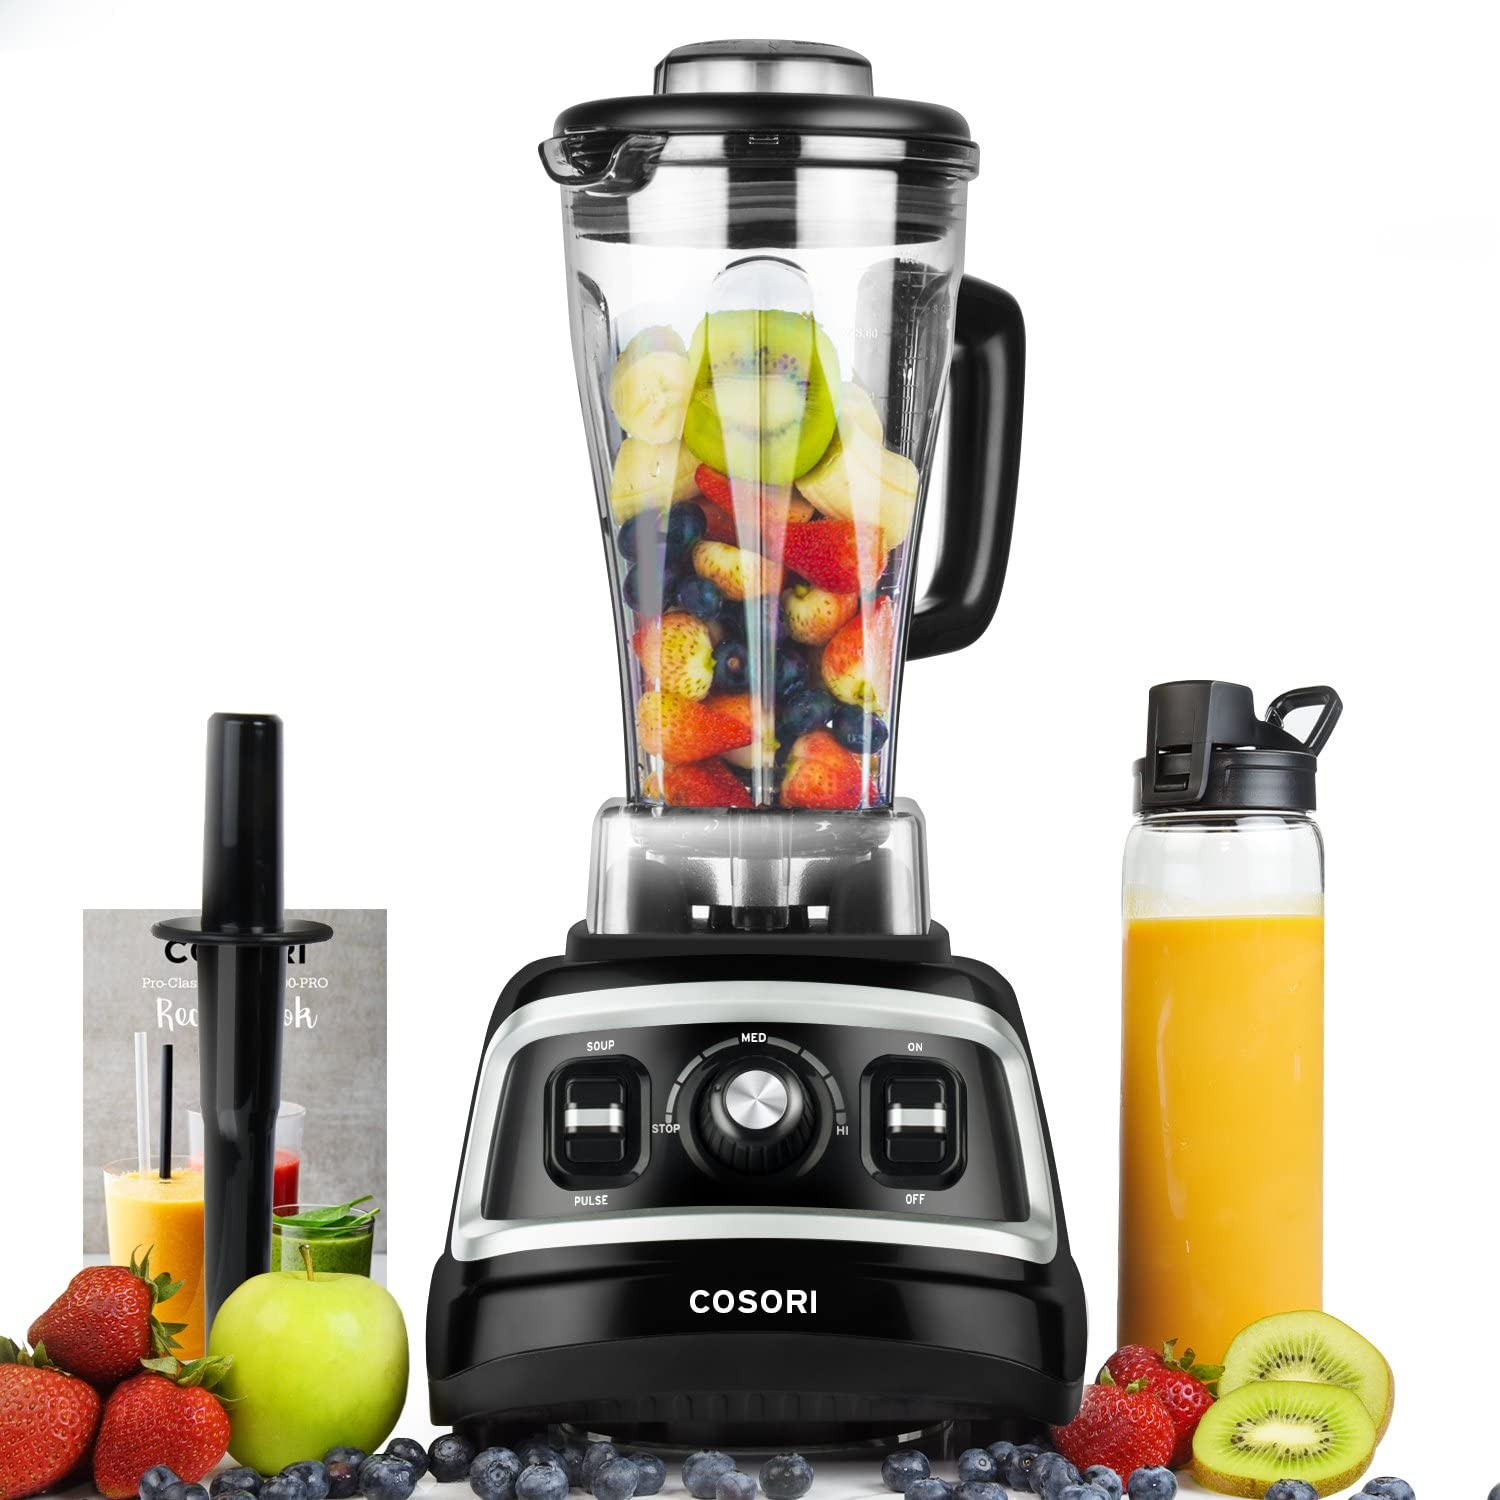 COSORI Blender 1500W for Shakes